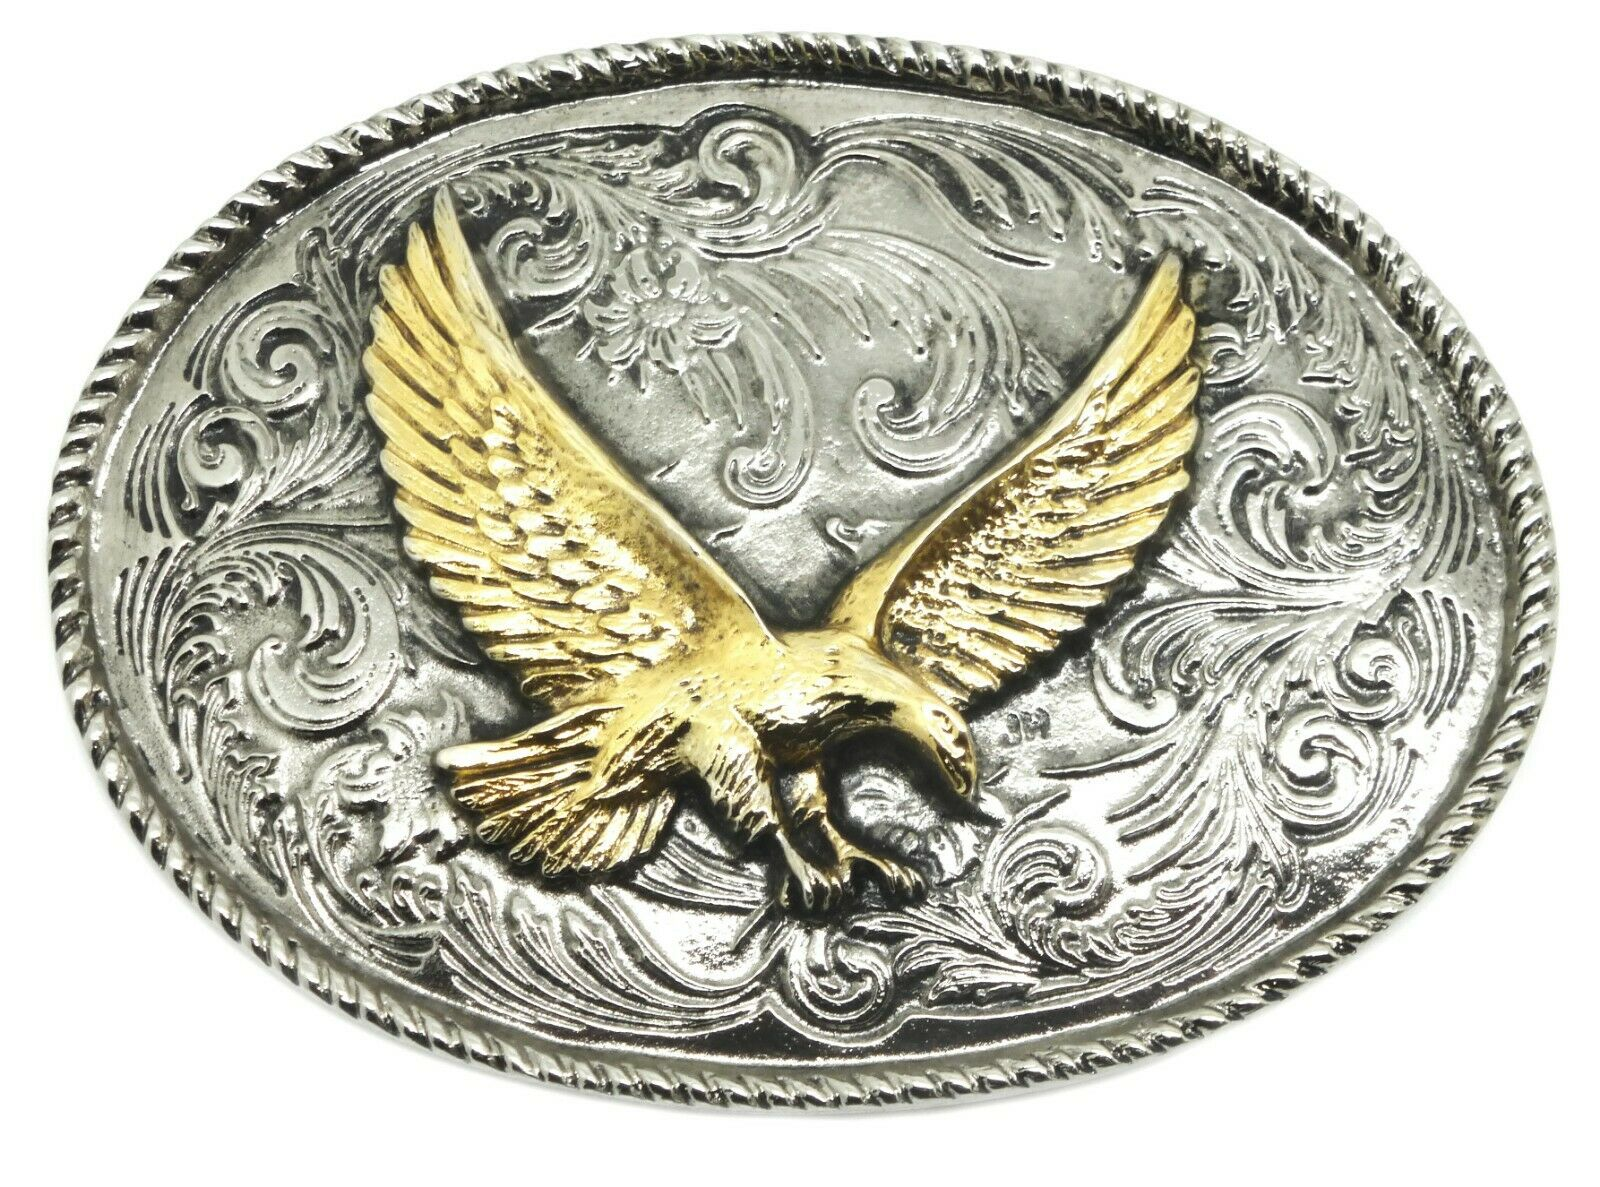 American Rodeo Eagle Belt Buckle Western Style Floral Oval White Wolf 24ct Gold